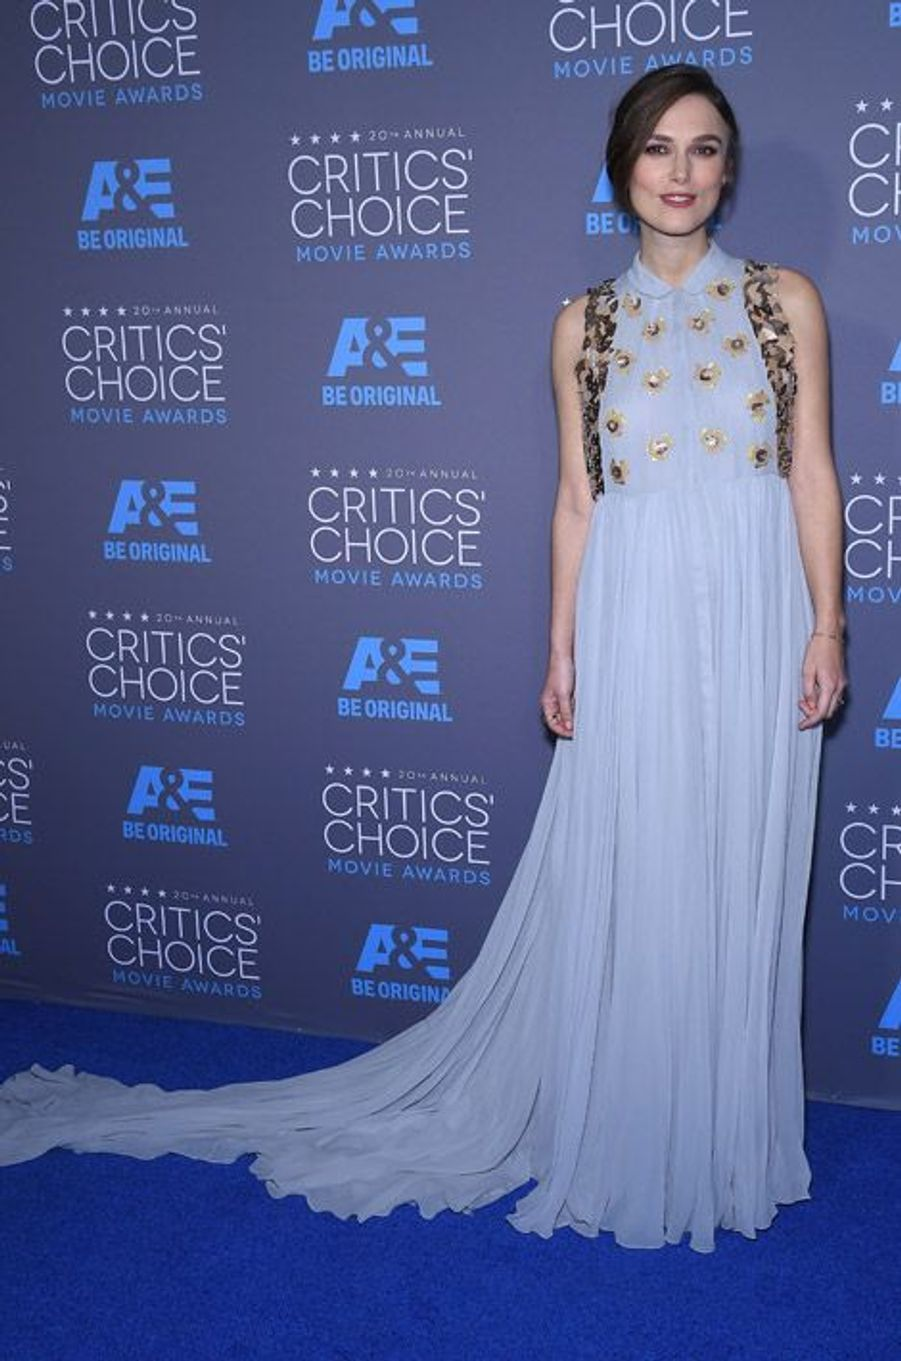 Keira Knightley en Delpozo lors de la cérémonie des Critics Choice Movie Awards à Los Angeles, le 15 janvier 2015